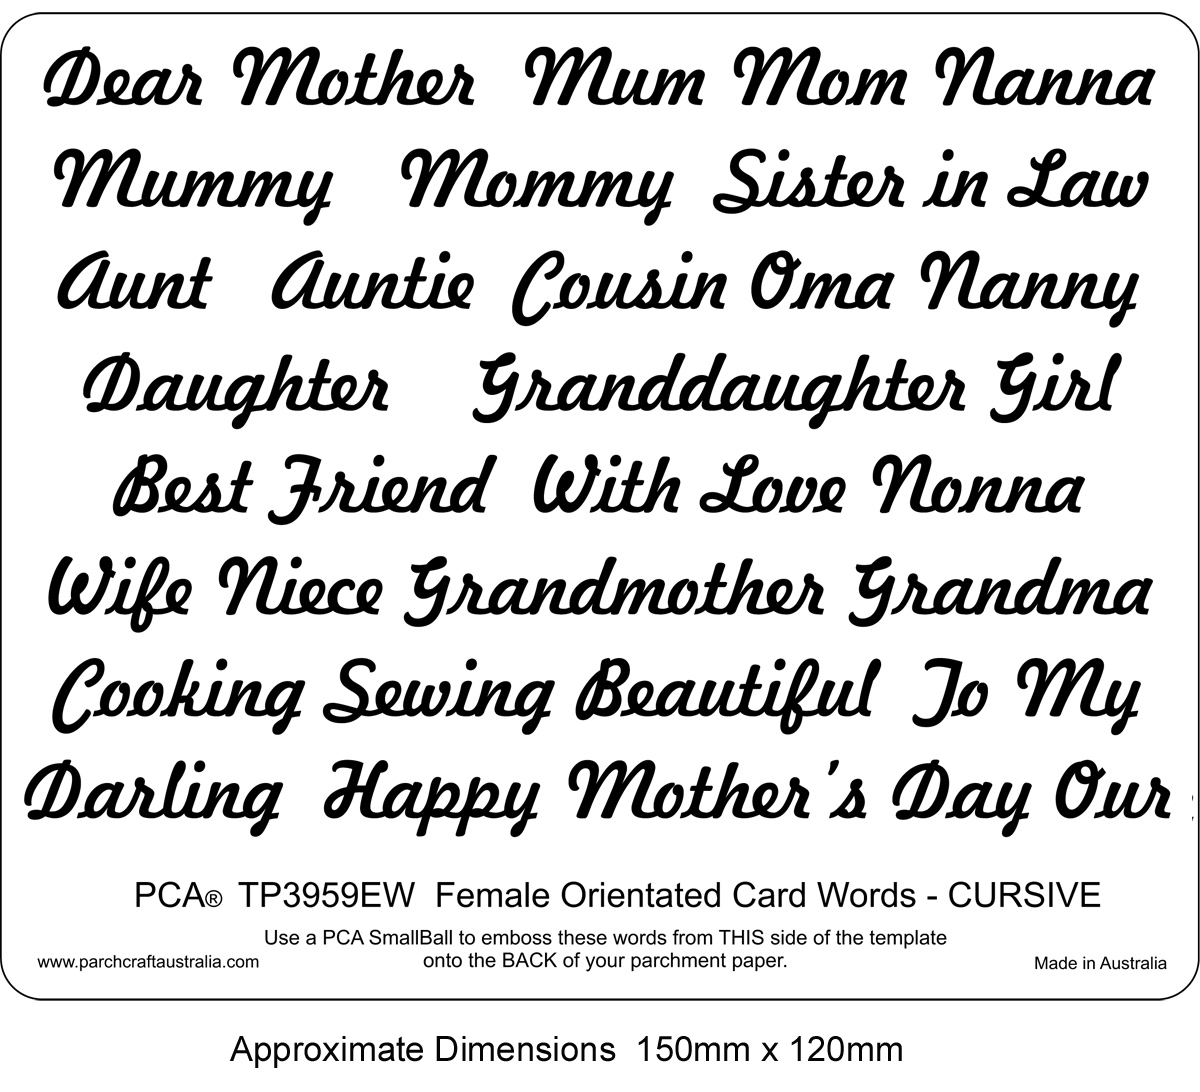 TP3959EW BW Female Orientated Words CURSIVE 84234 Zoom